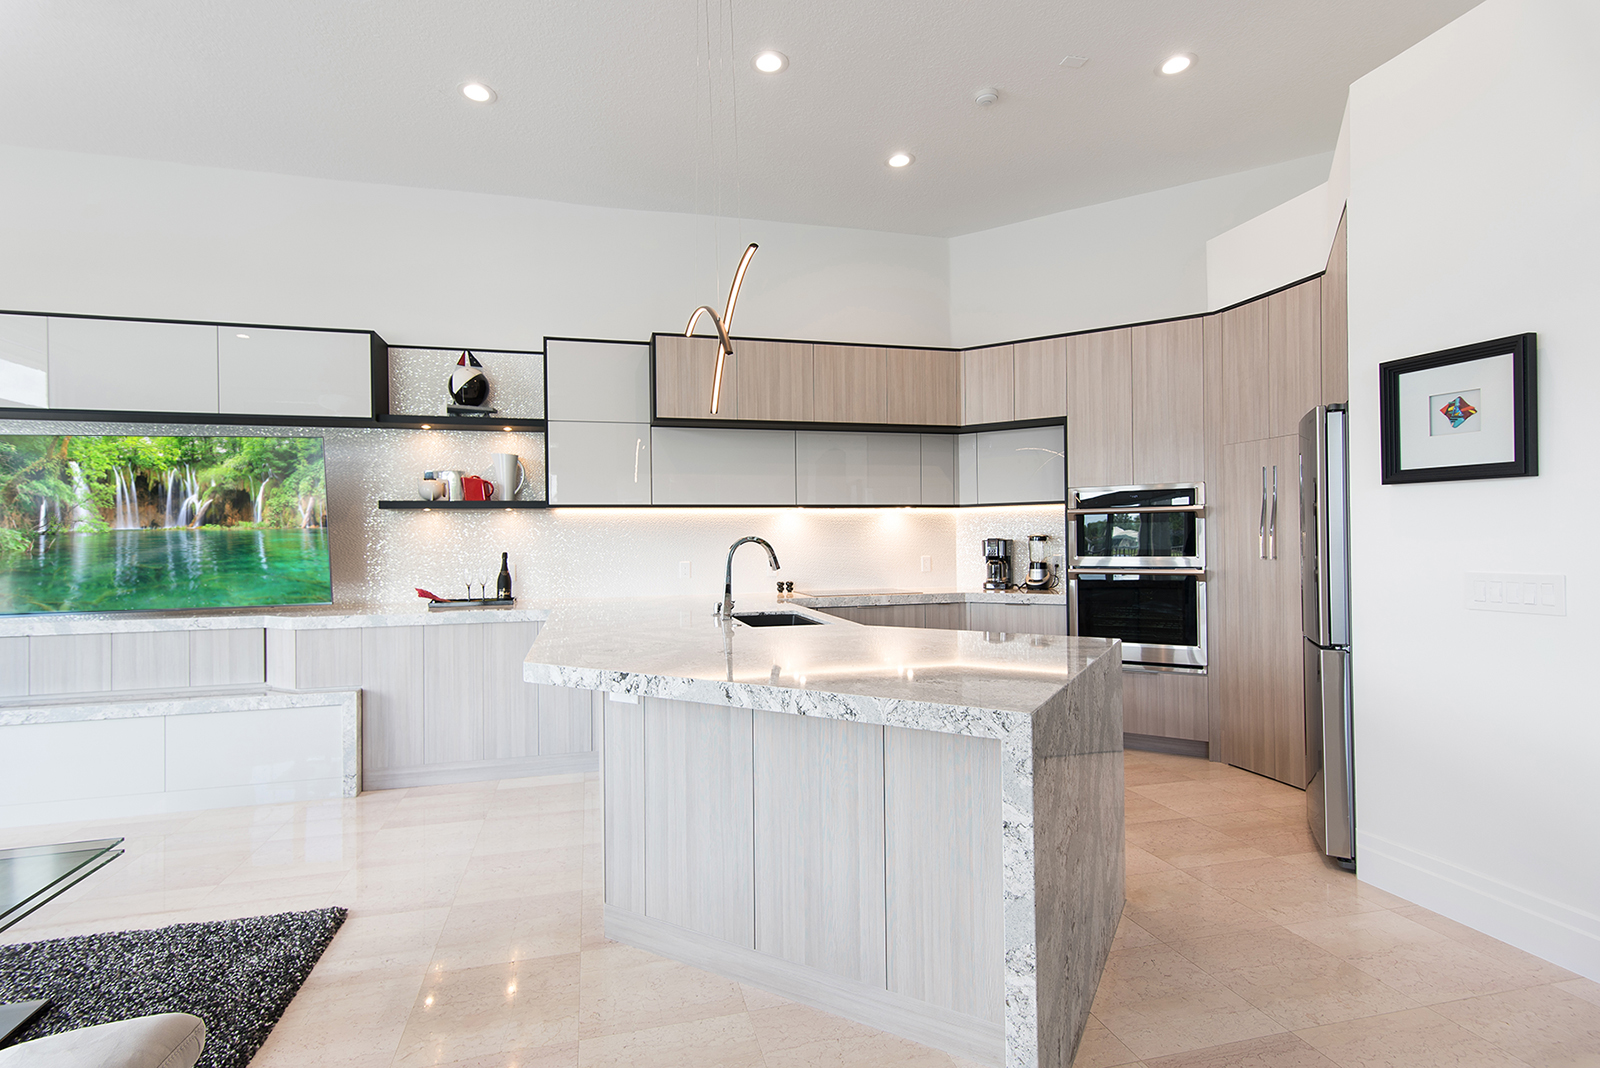 Diynetwork.com shares tips on kitchen cabinets to make choosing the right kind easier. Brilliant | Fort Lauderdale Kitchen Remodel | Miralis ...